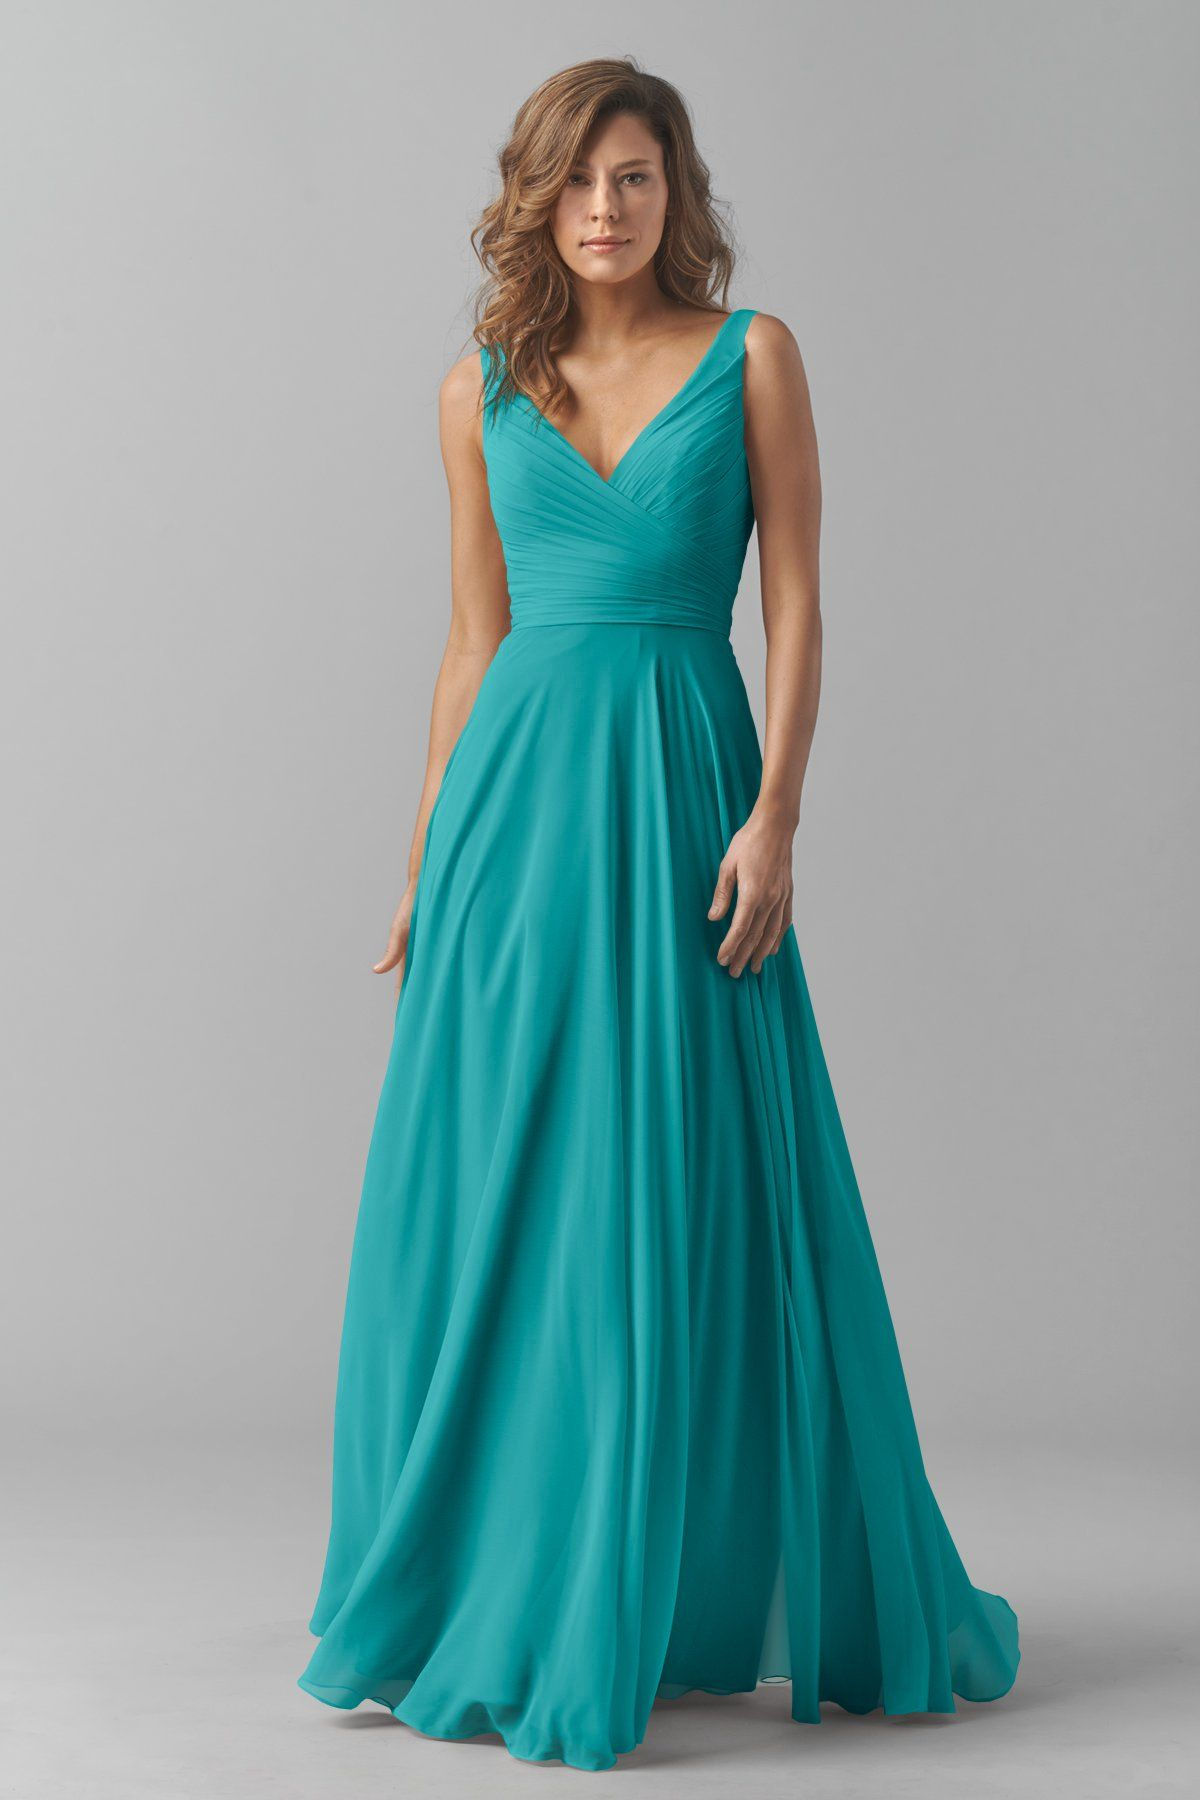 MACloth Women Short Lace Chiffon Bridesmaid Dress Cocktail Party Formal Gown (EU32, Verde Oliva)